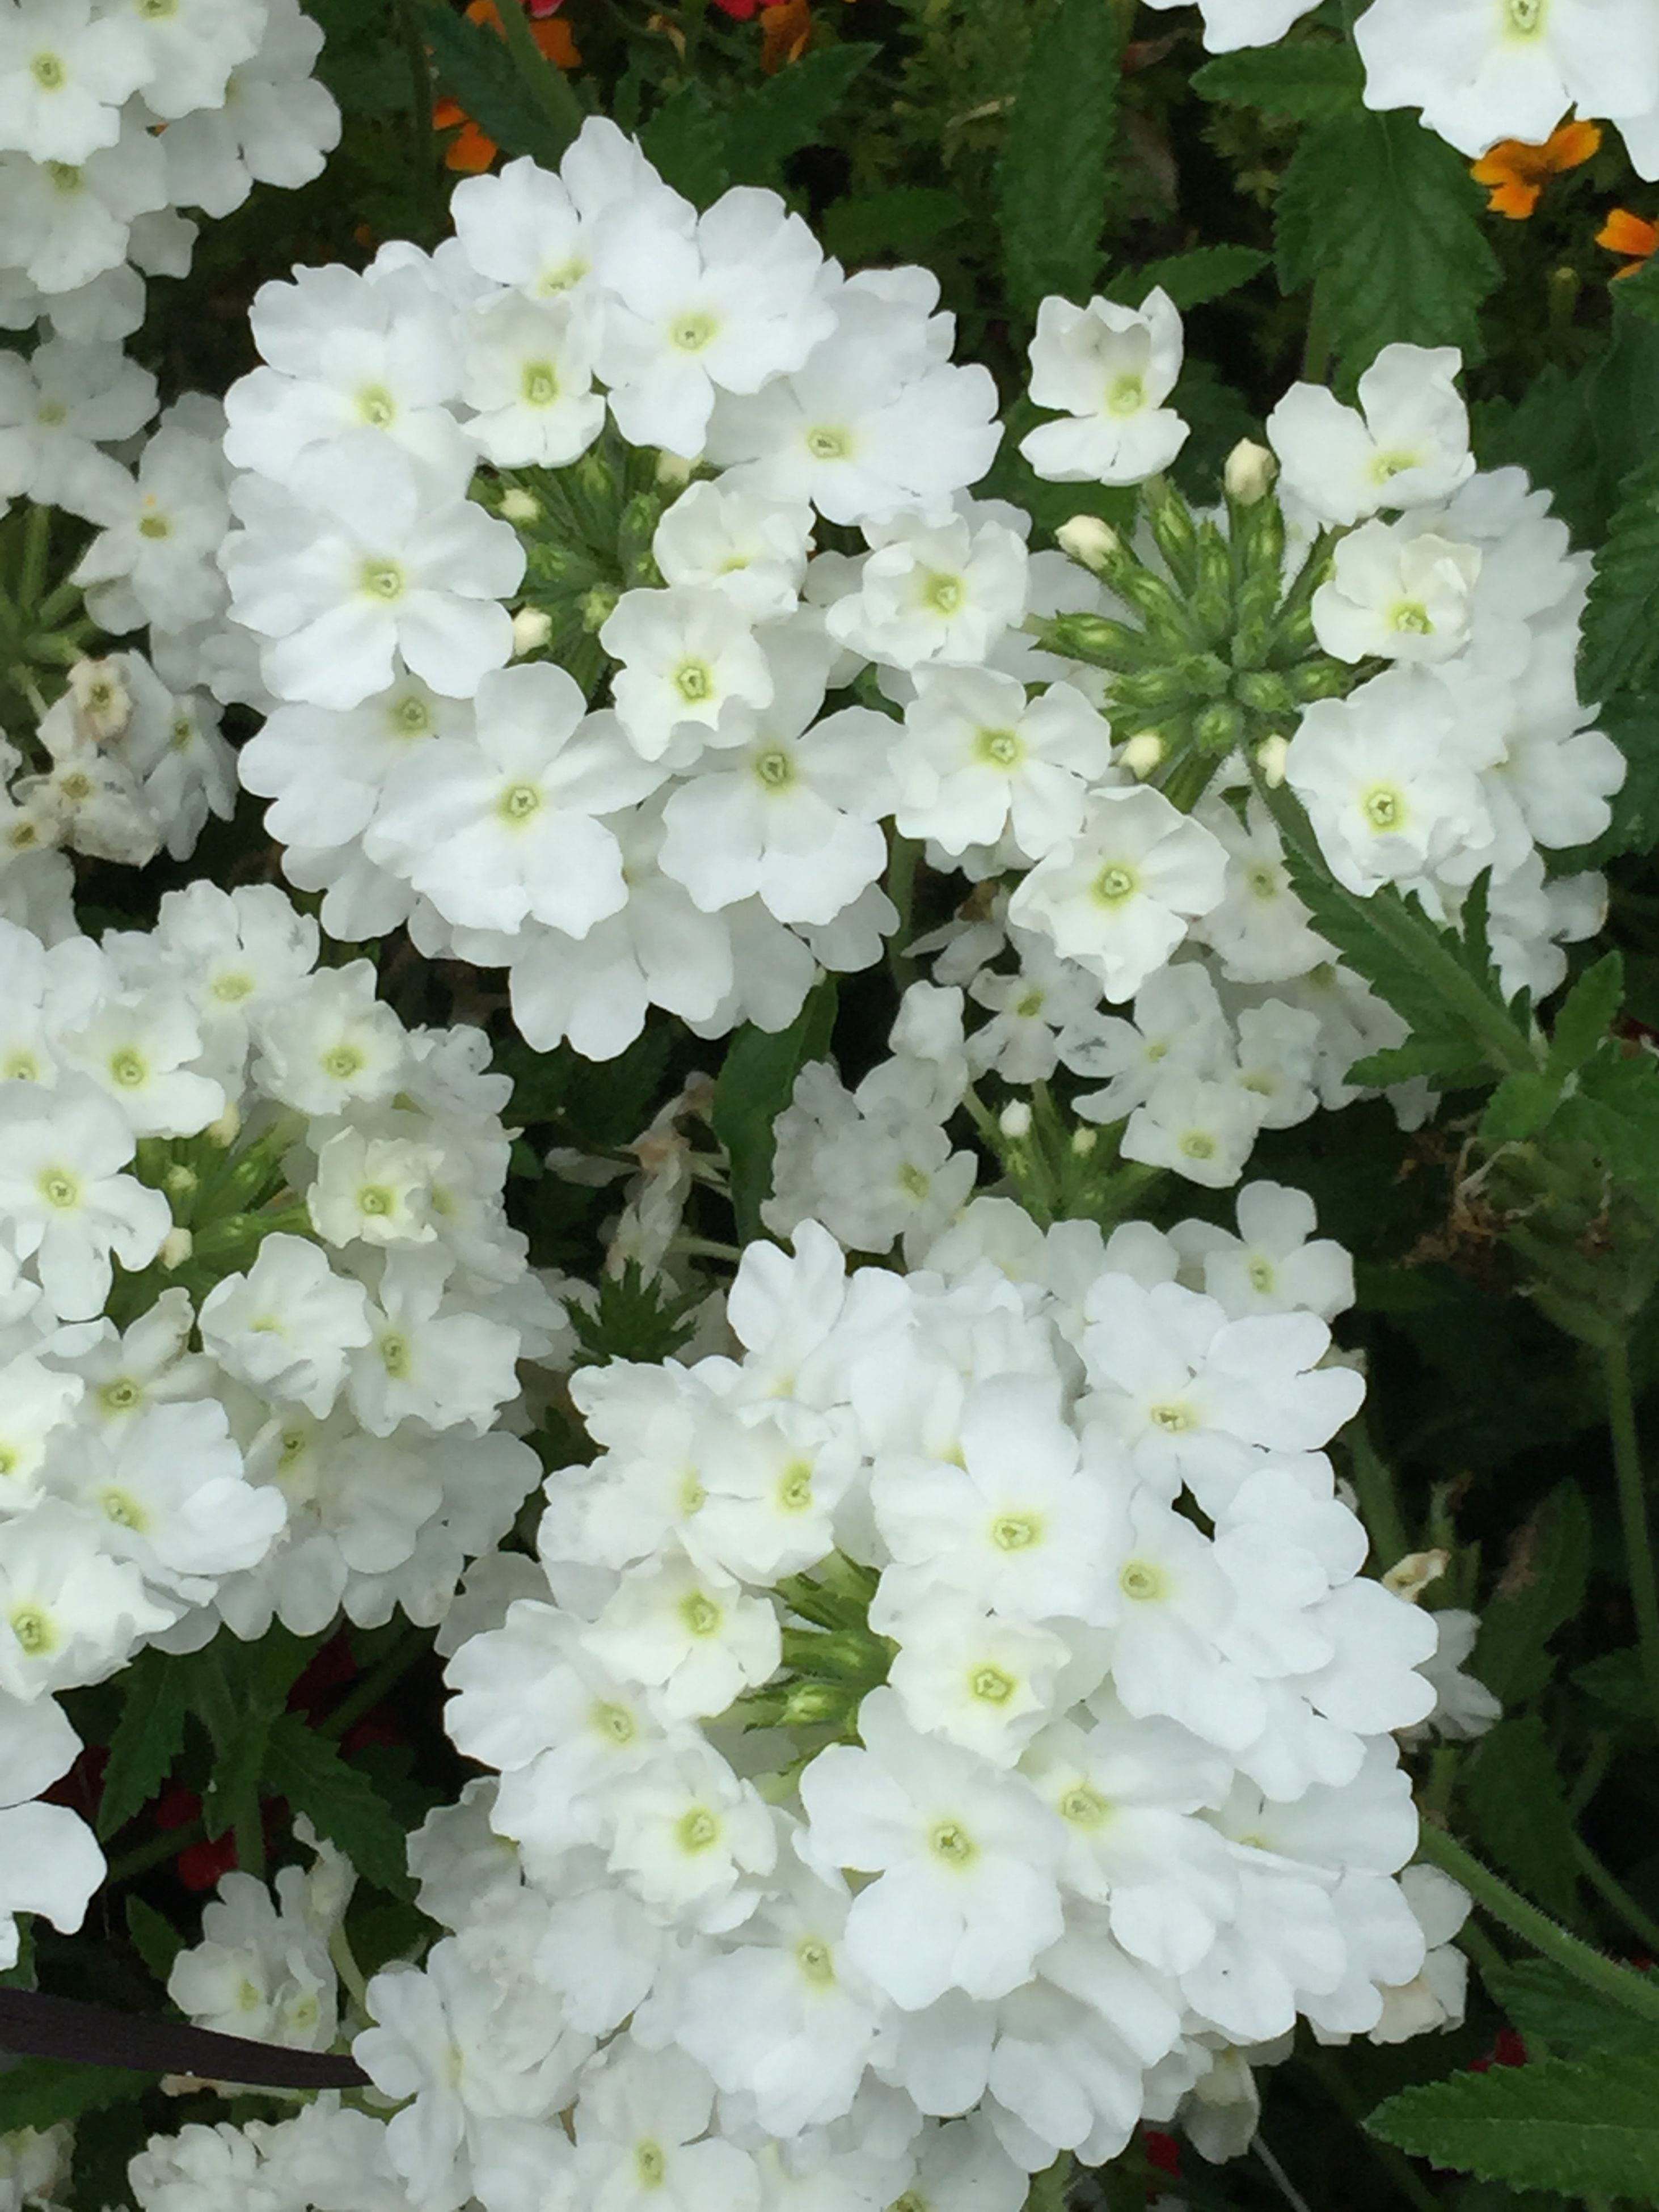 flower, freshness, petal, fragility, flower head, white color, growth, beauty in nature, blooming, nature, plant, high angle view, in bloom, close-up, bunch of flowers, blossom, leaf, botany, park - man made space, no people